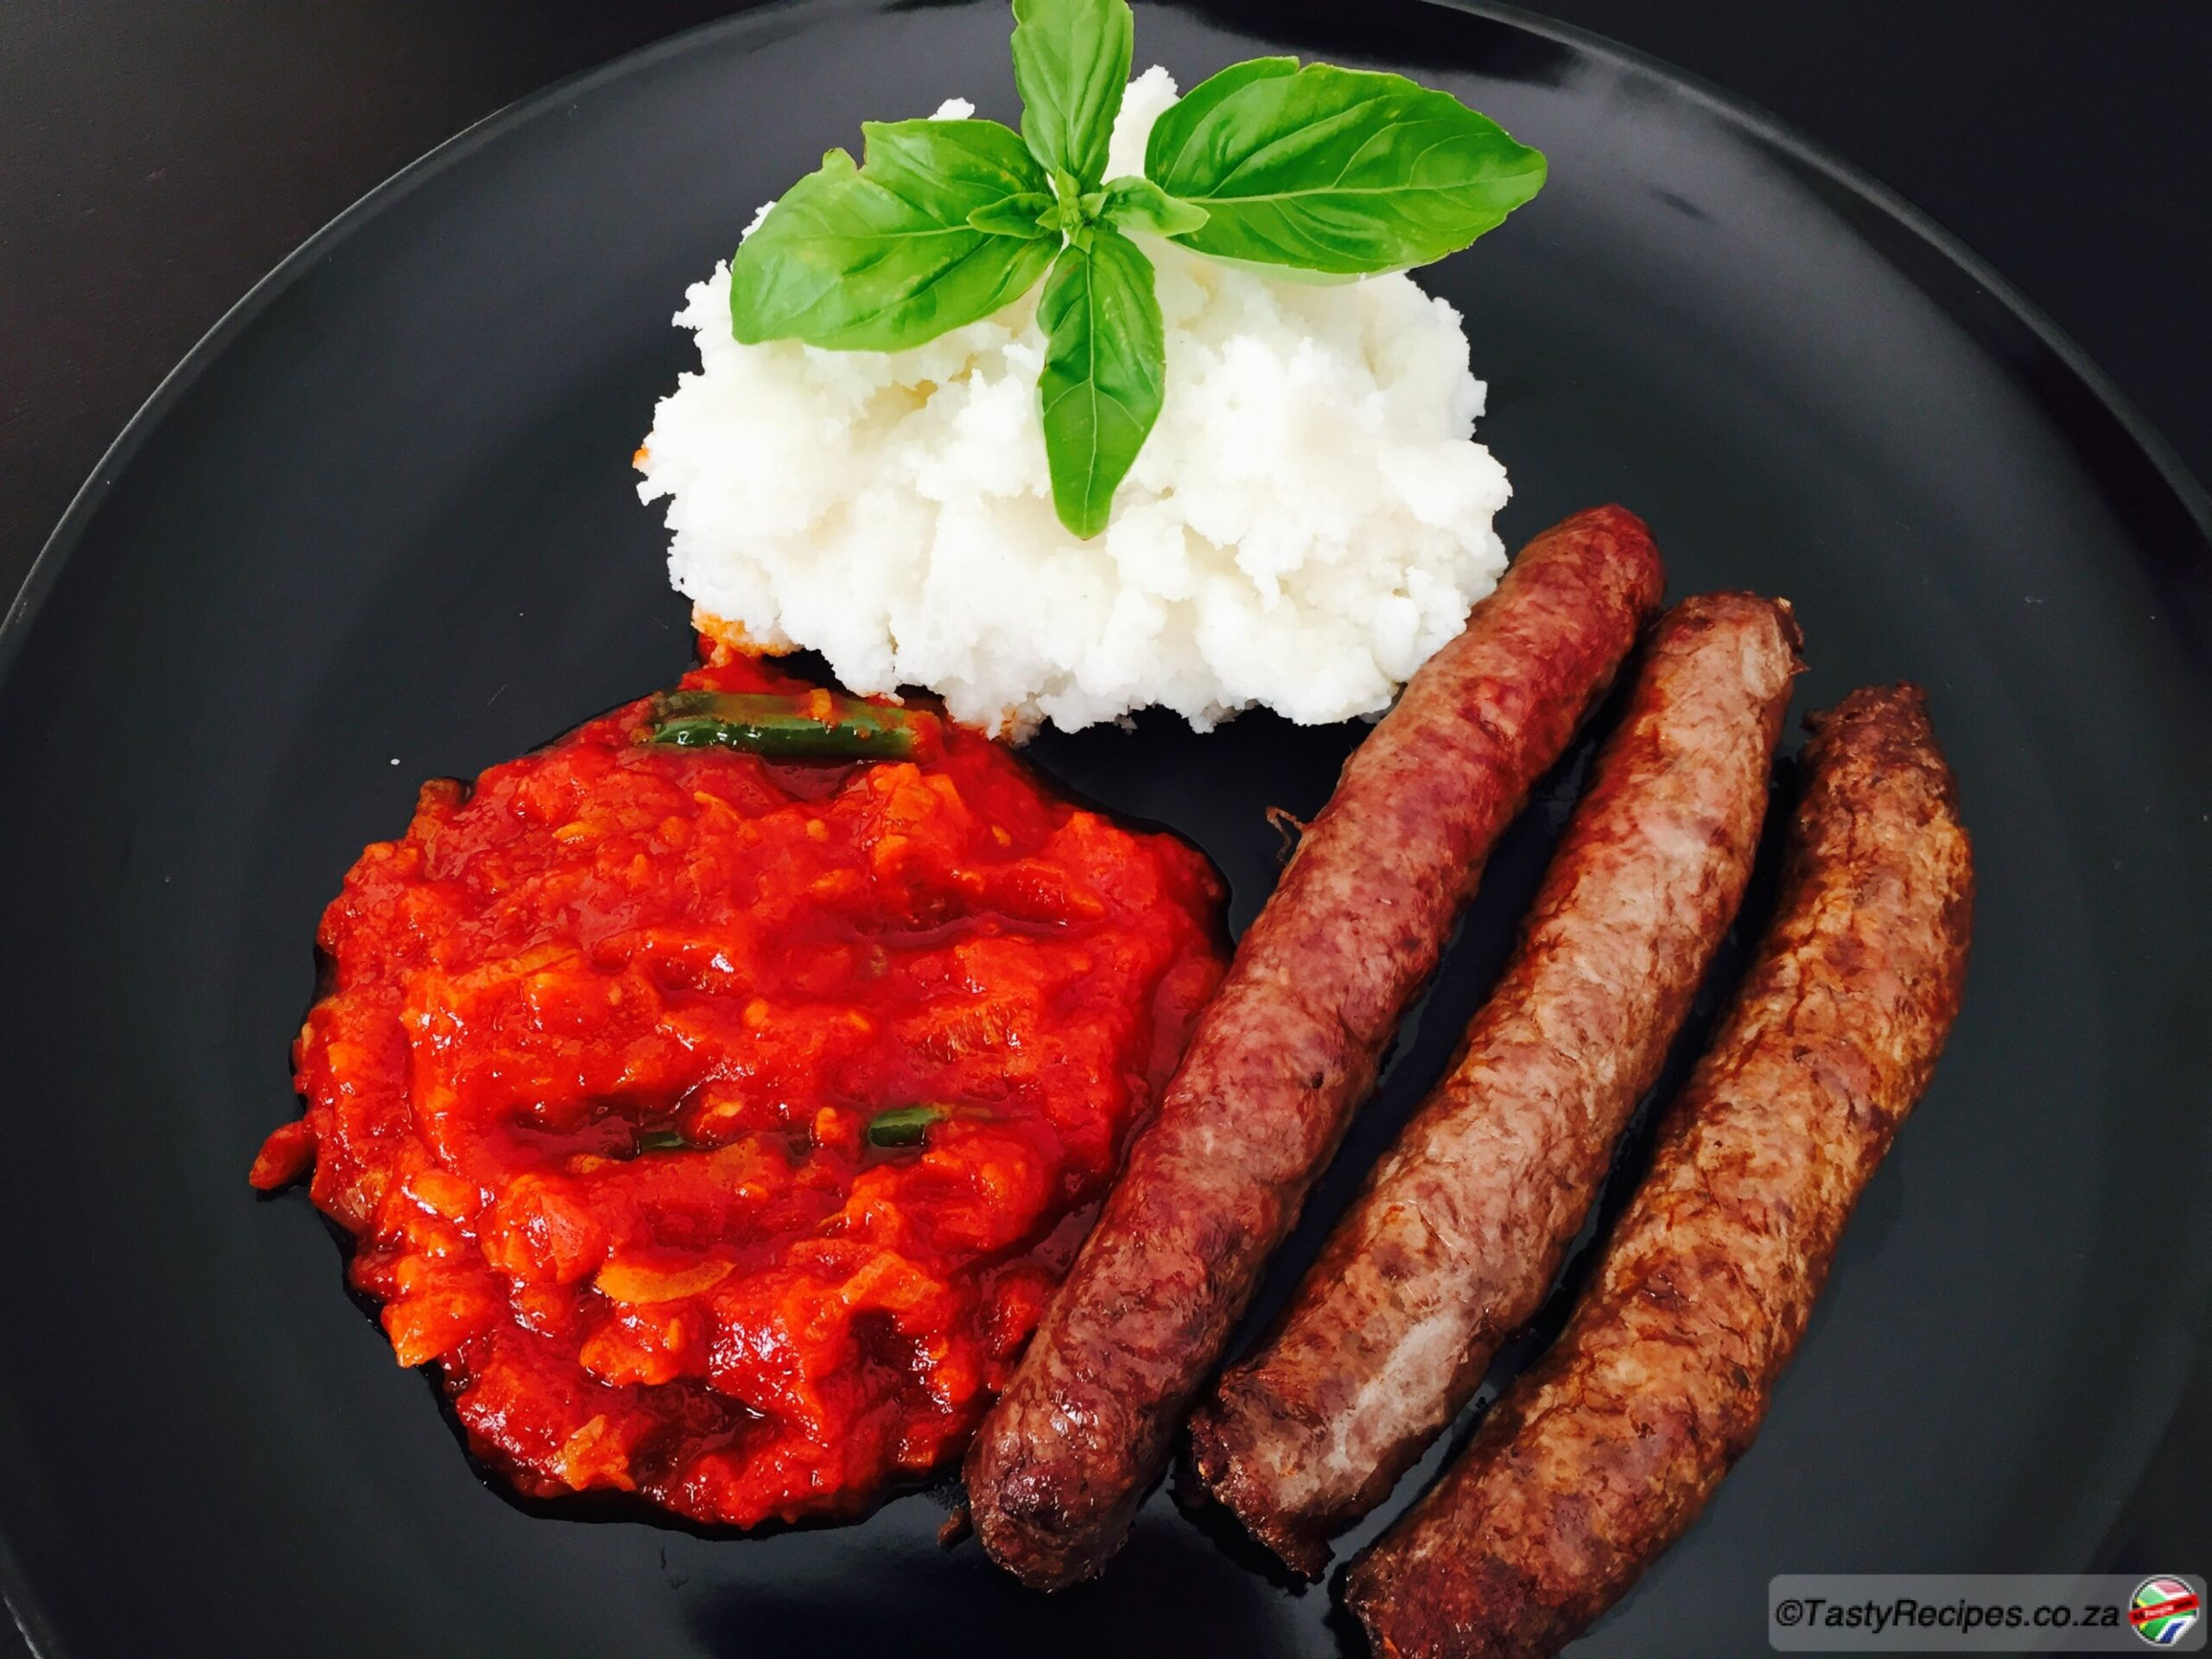 PAP AND TOMATO RELISH WITH BOEREWORS - Recipes Cooking Boerewors